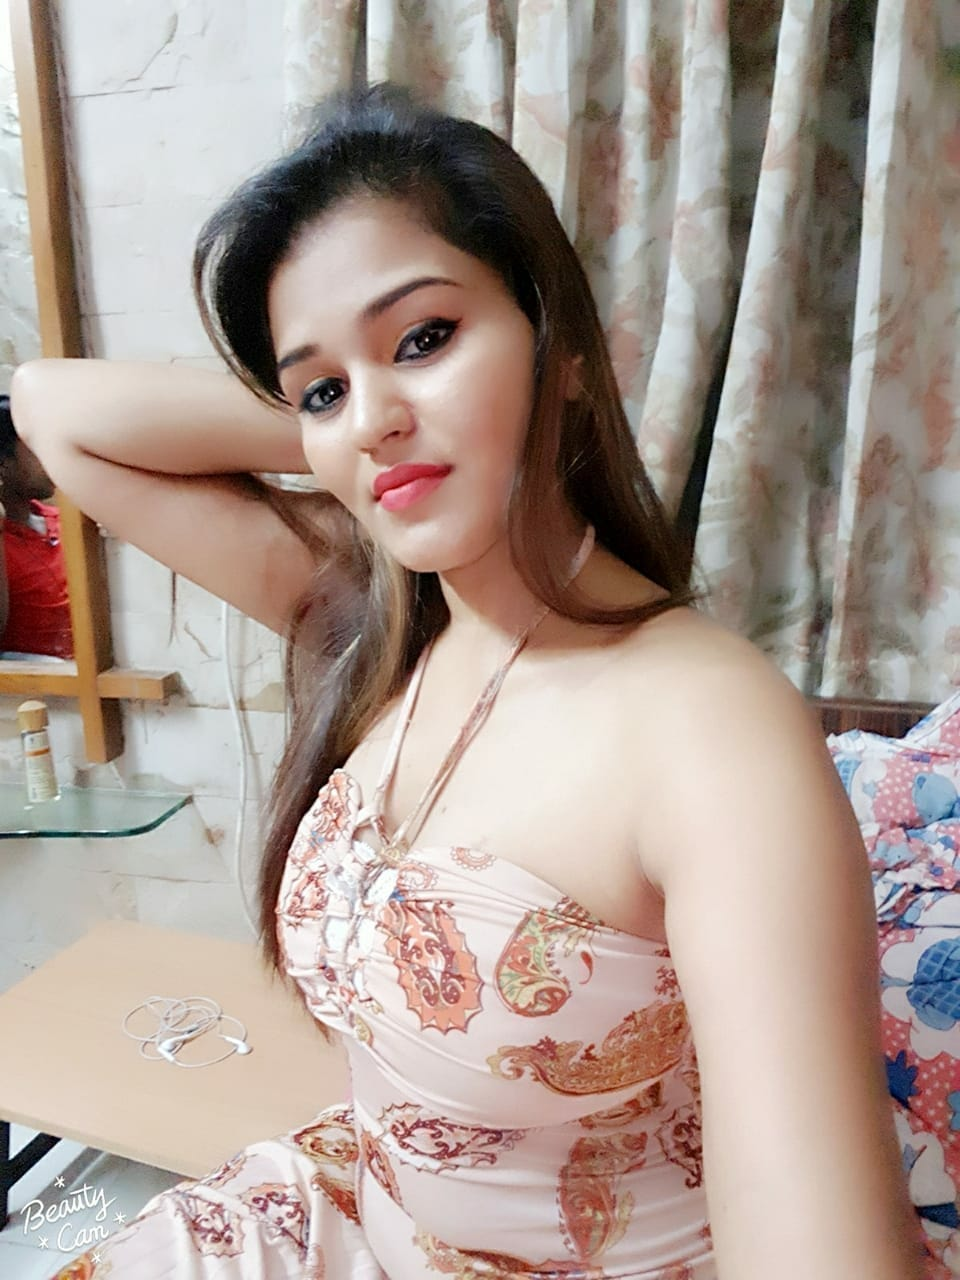 Russian Escorts In  Ambewadi